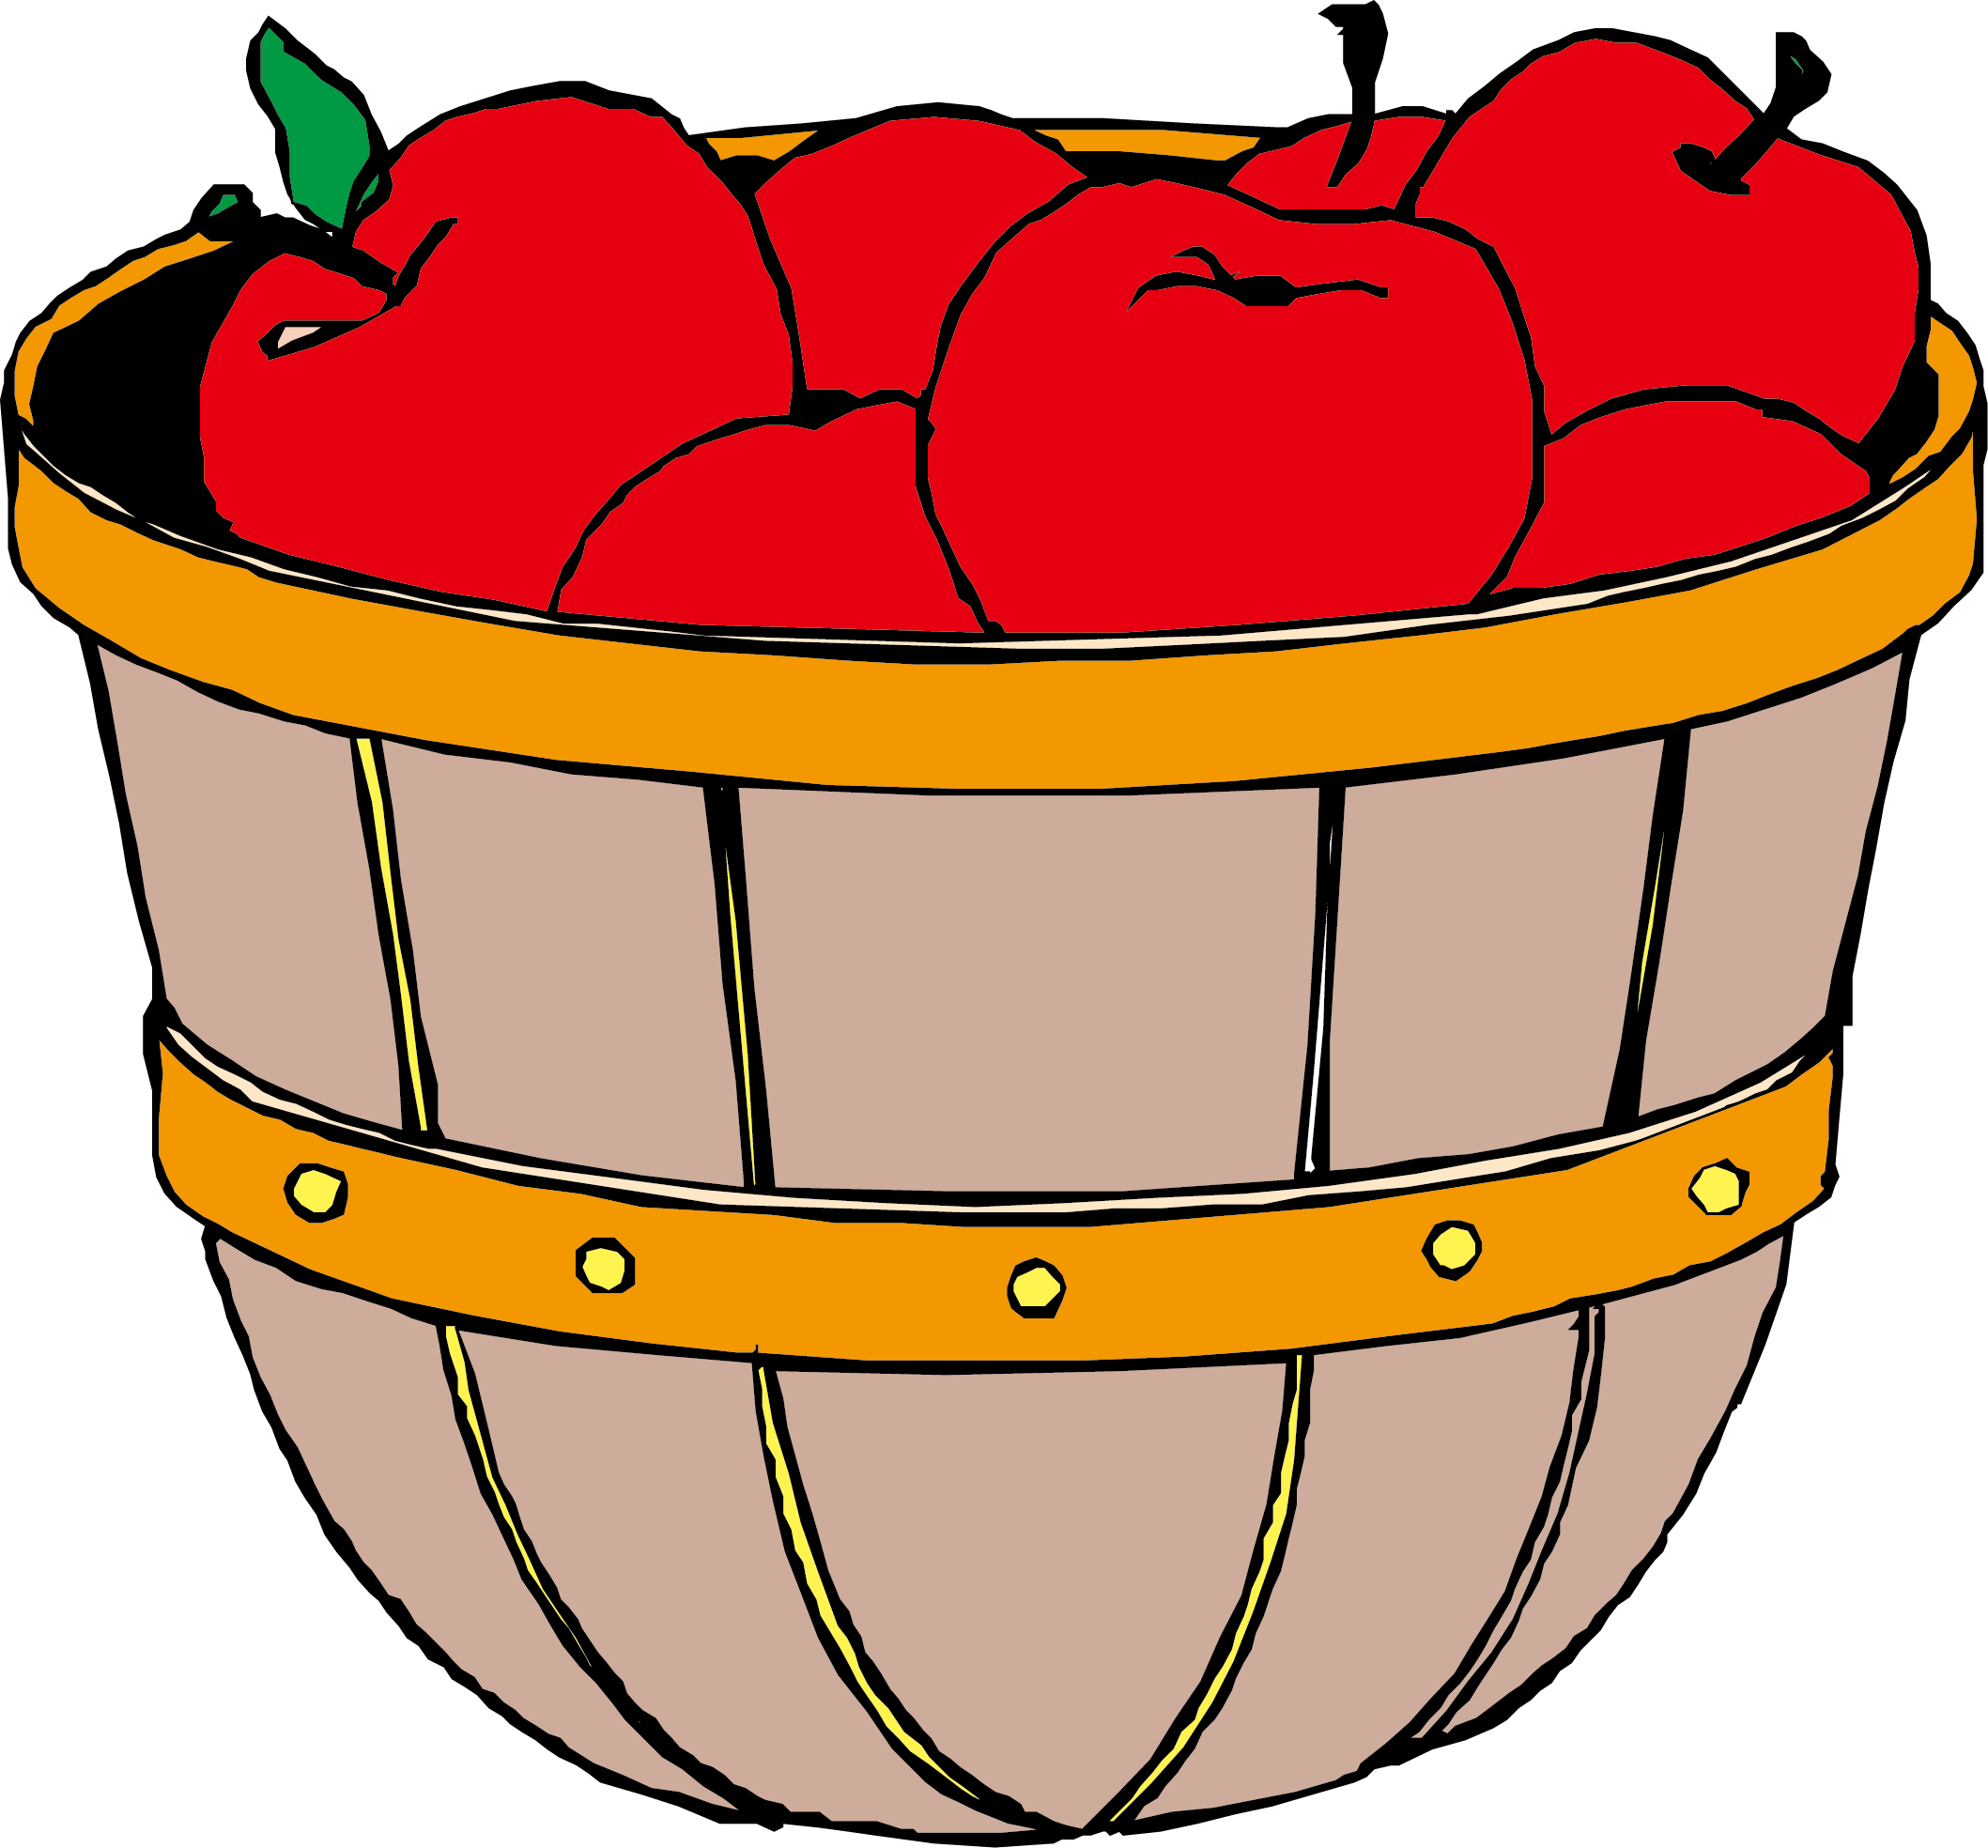 Apple orchard clipart free banner library stock Apple Oka Orchard Drawing - Full of apples 2117*1968 transprent Png ... banner library stock